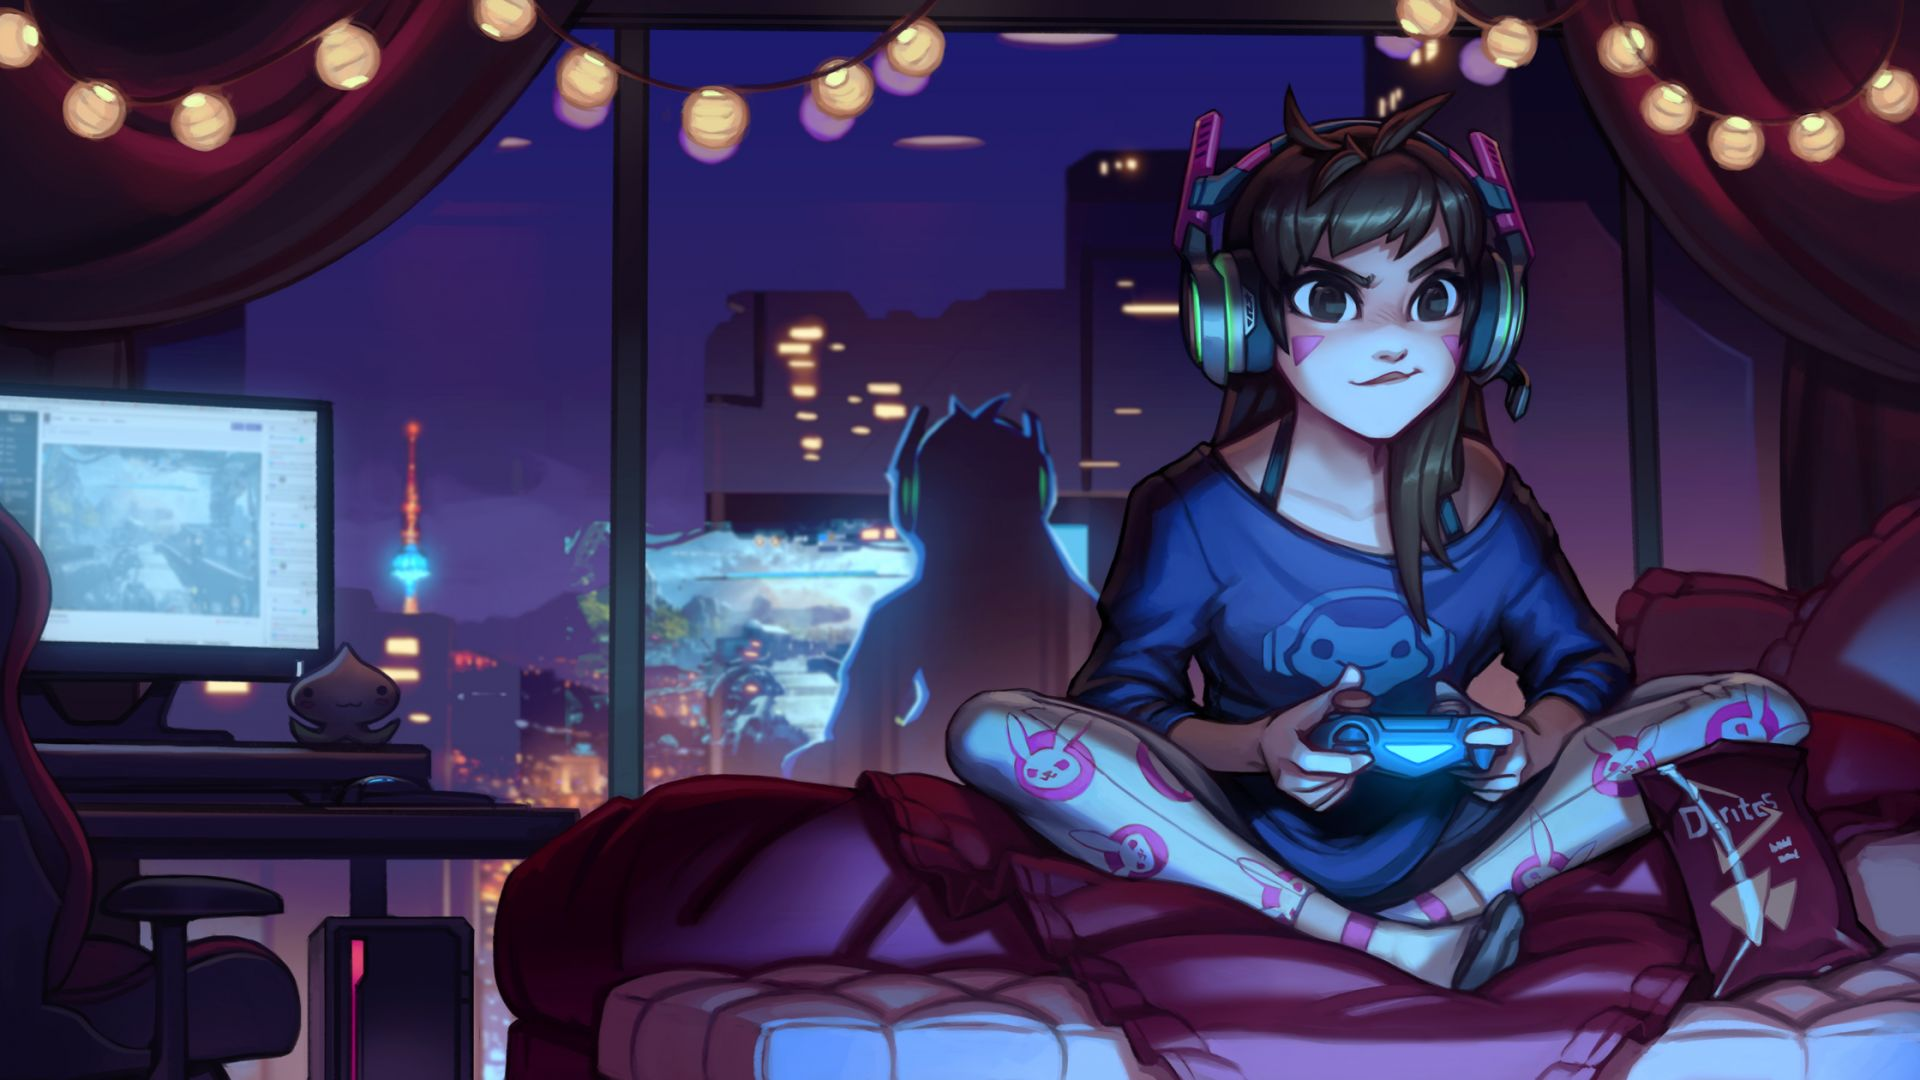 Cute Wallpapers Youtubers Use For Their Computer Desktop Wallpaper Little D Va Overwatch Video Game Hd